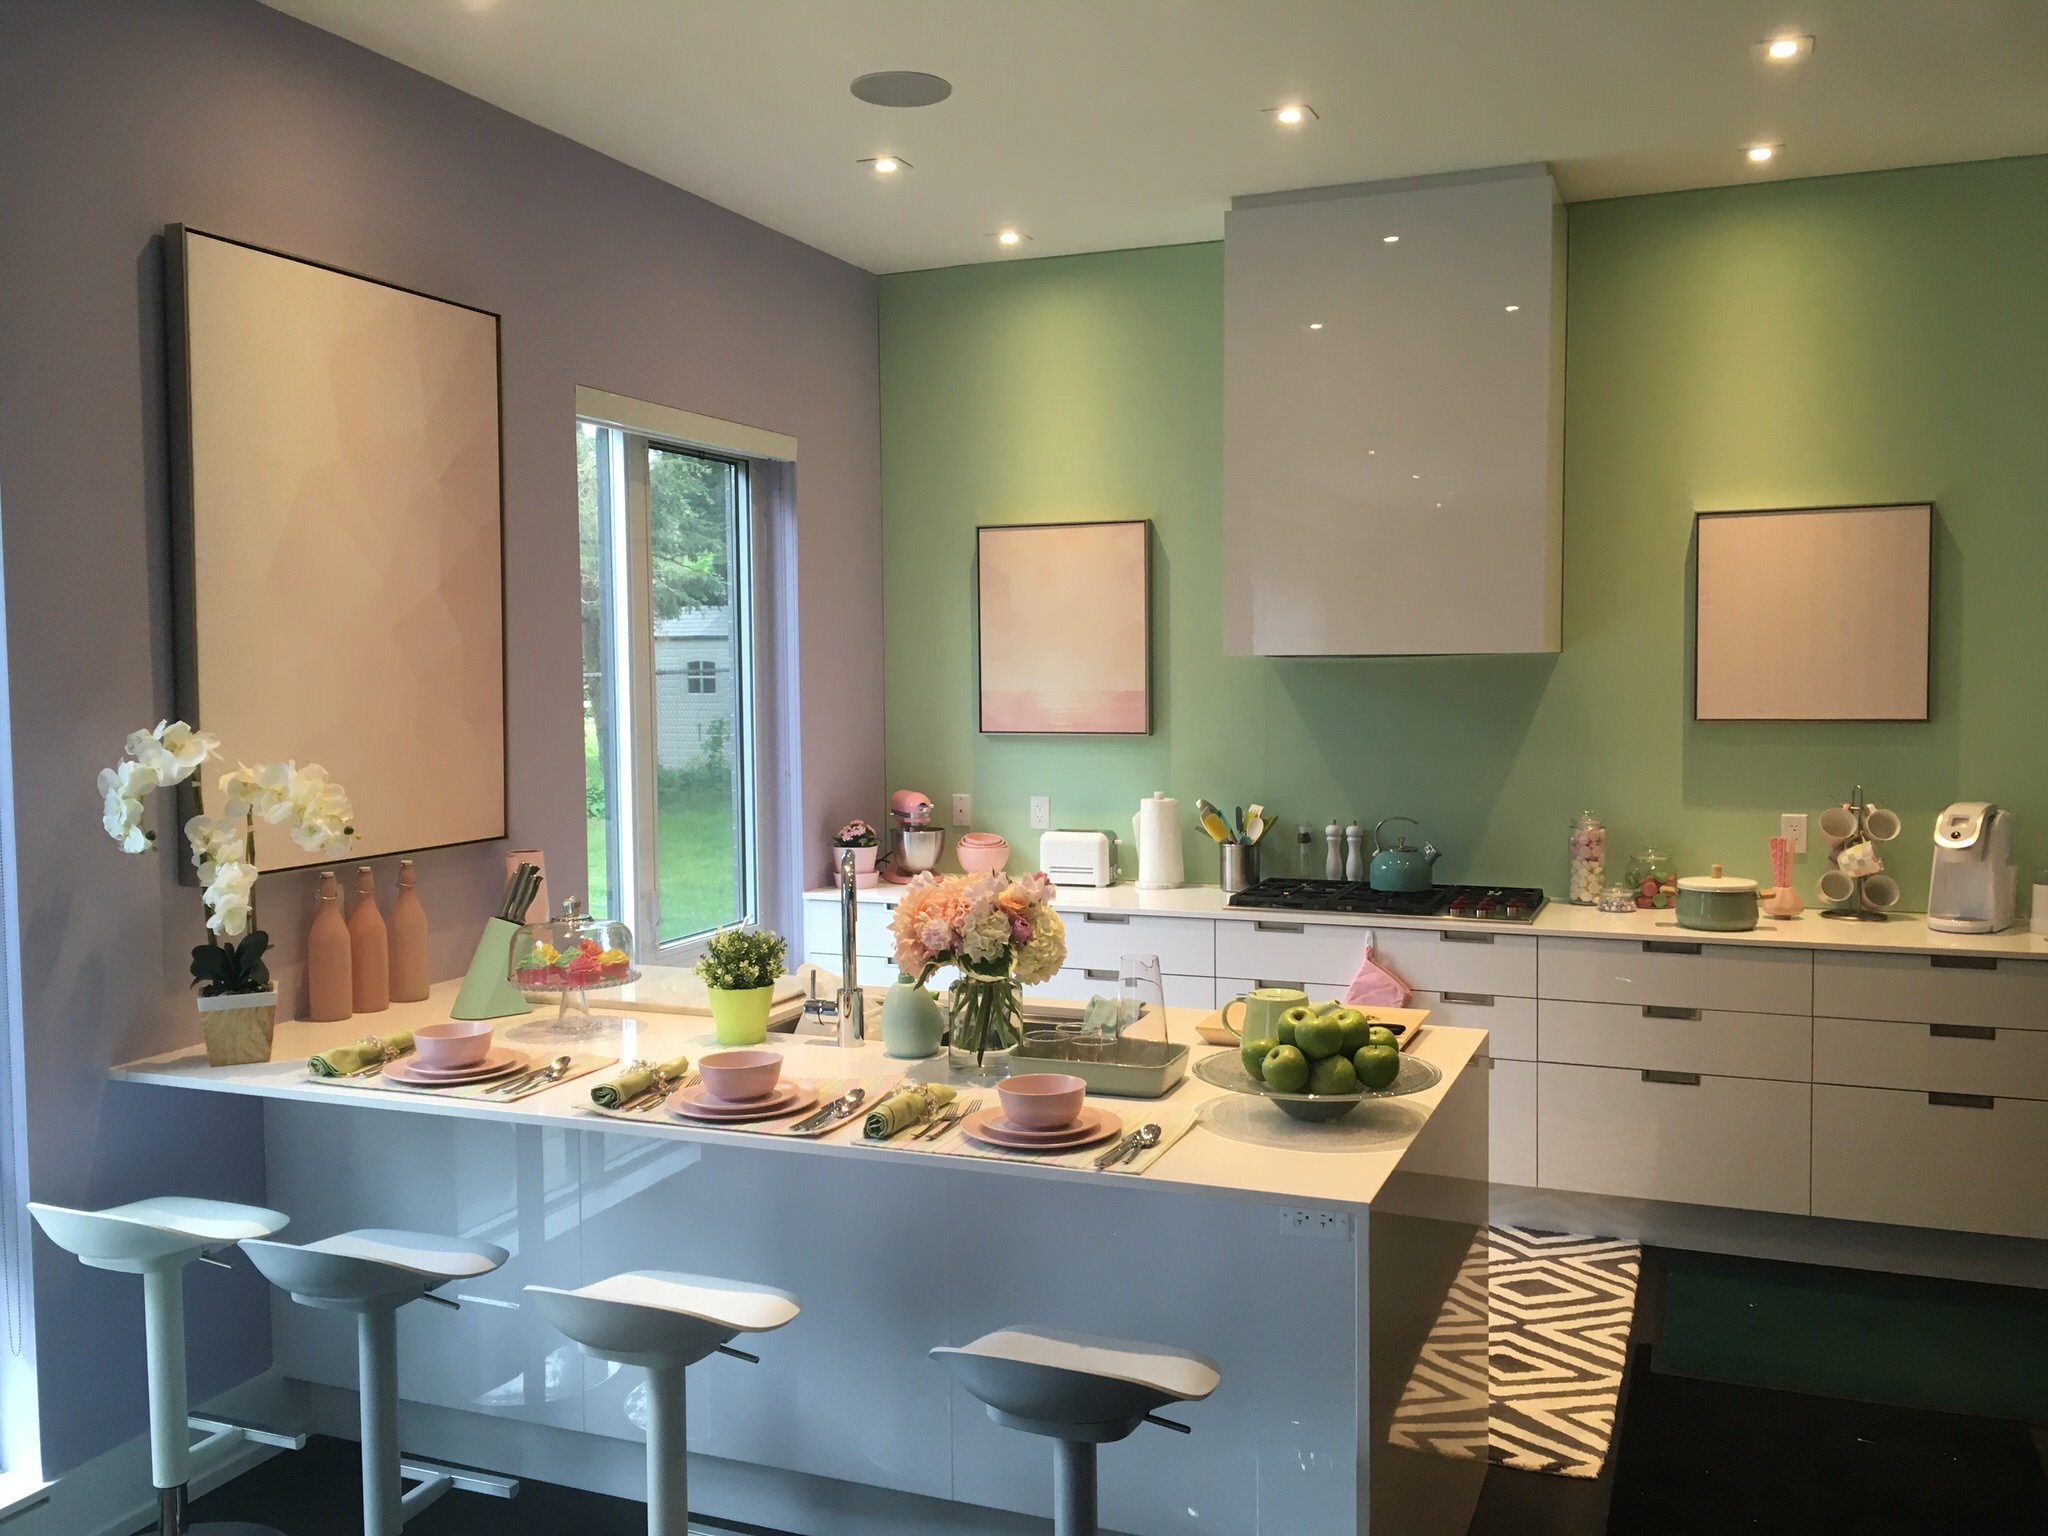 Addison's (Meg Donnelly) family kitchen.